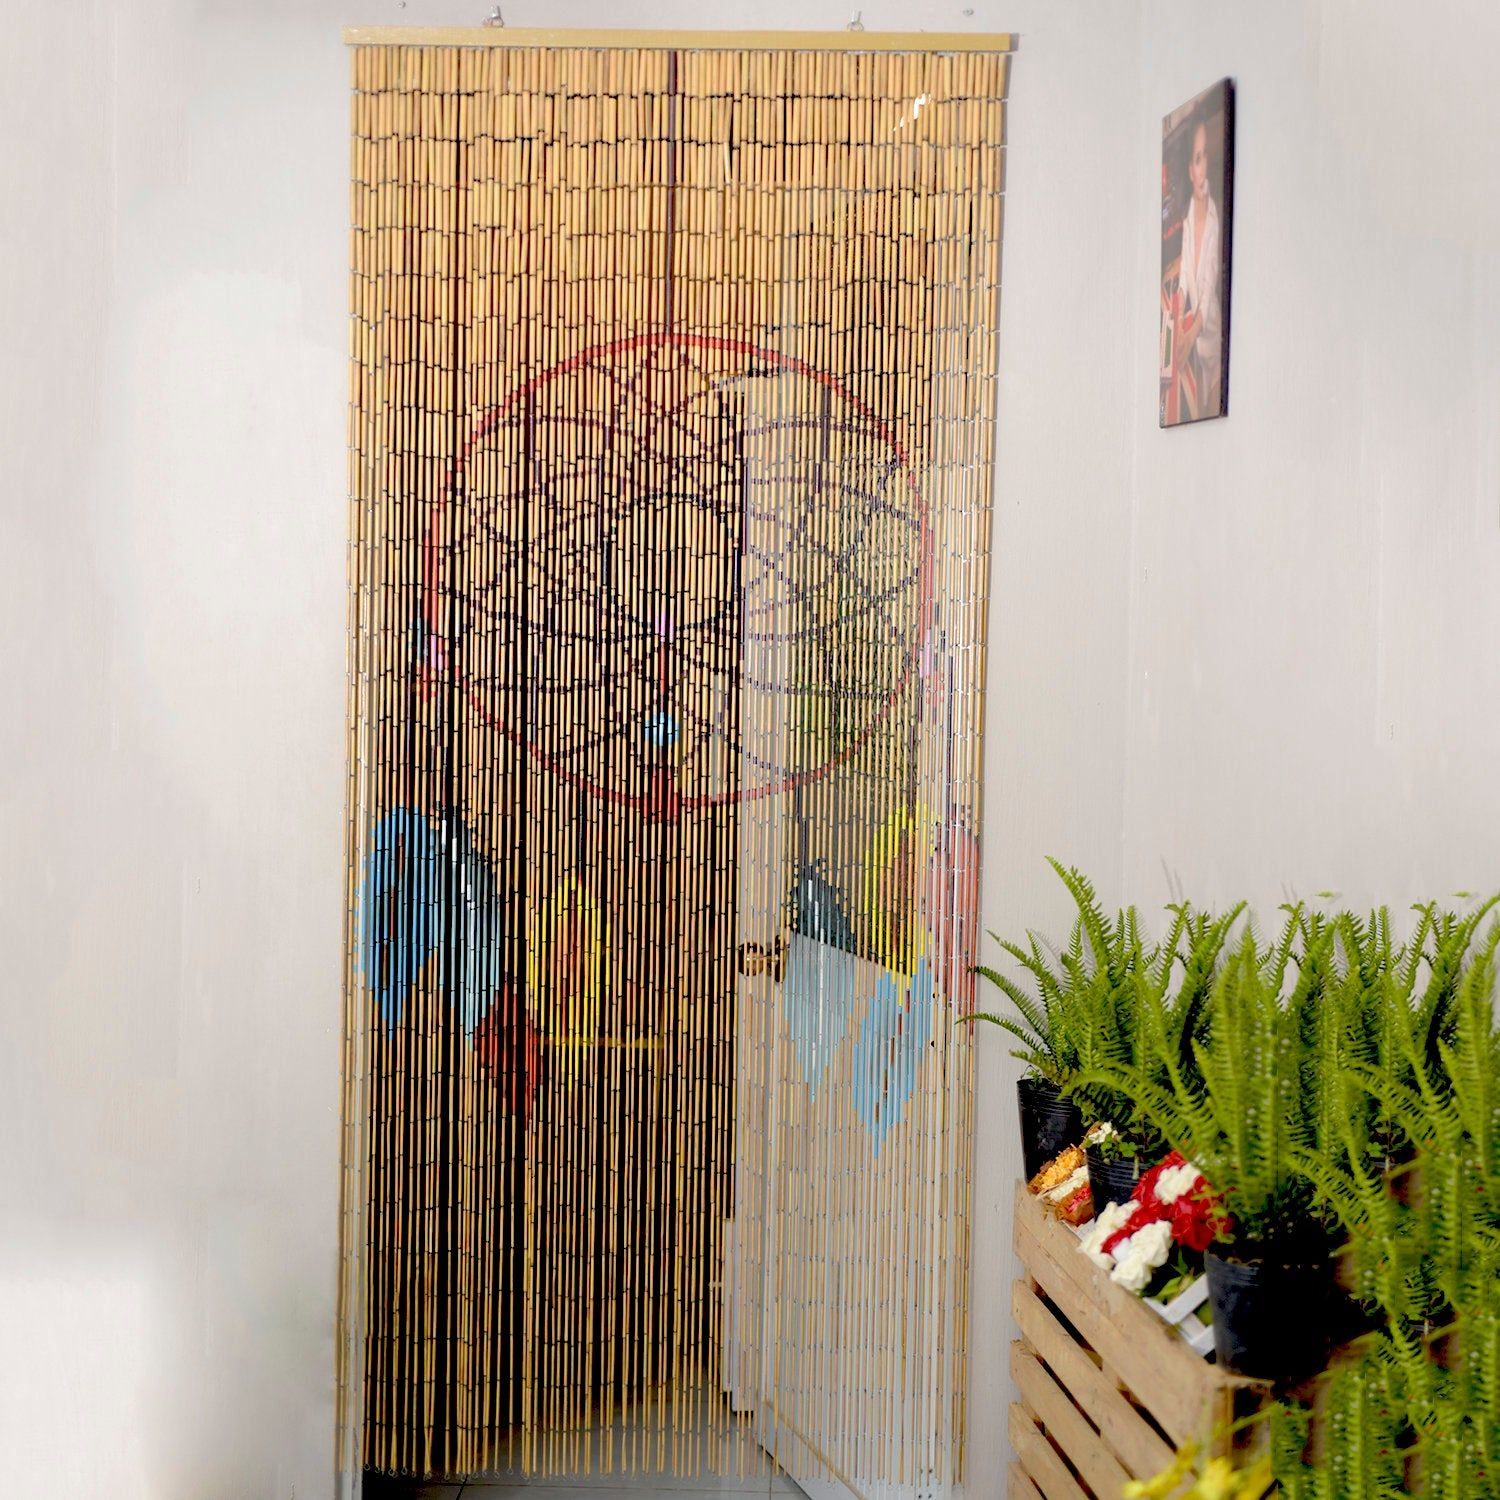 Dream Catcher Beaded Curtain Room Divider Beaded Door Curtain Bamboo Beaded Curtain For Doorw In 2020 Bamboo Beaded Curtains Beaded Curtains Beaded Door Curtains